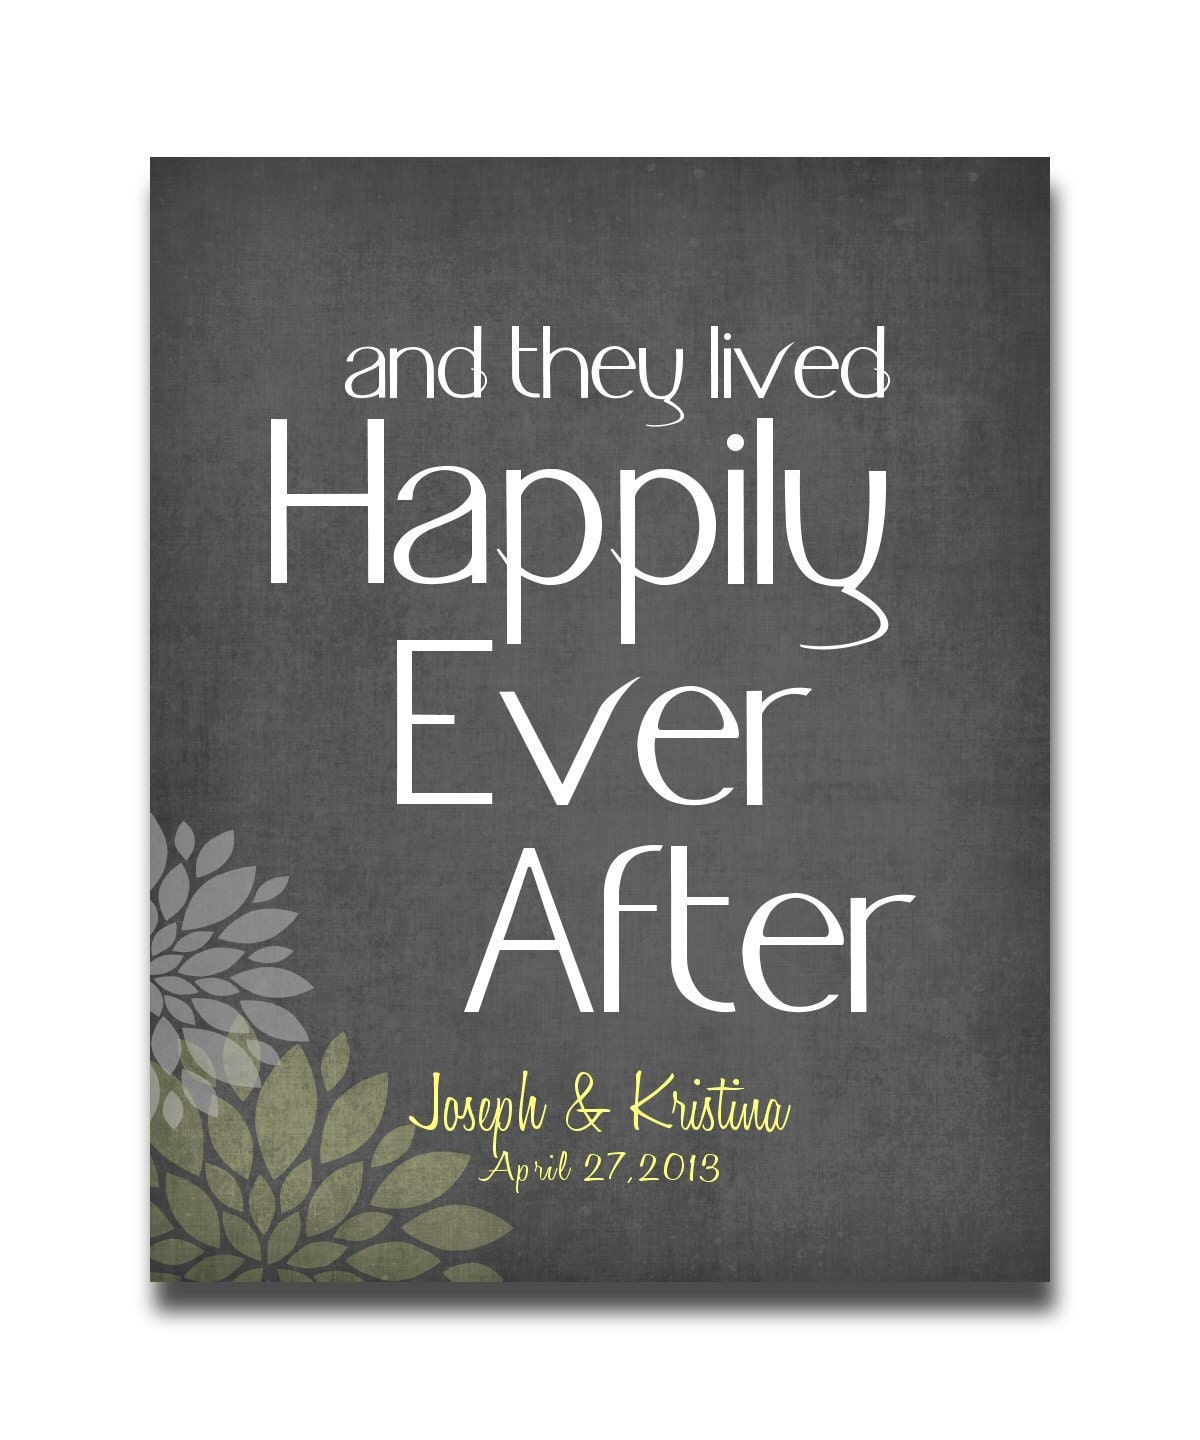 Personalized Wedding Gift Art And They Lived Happily Ever After Print ...